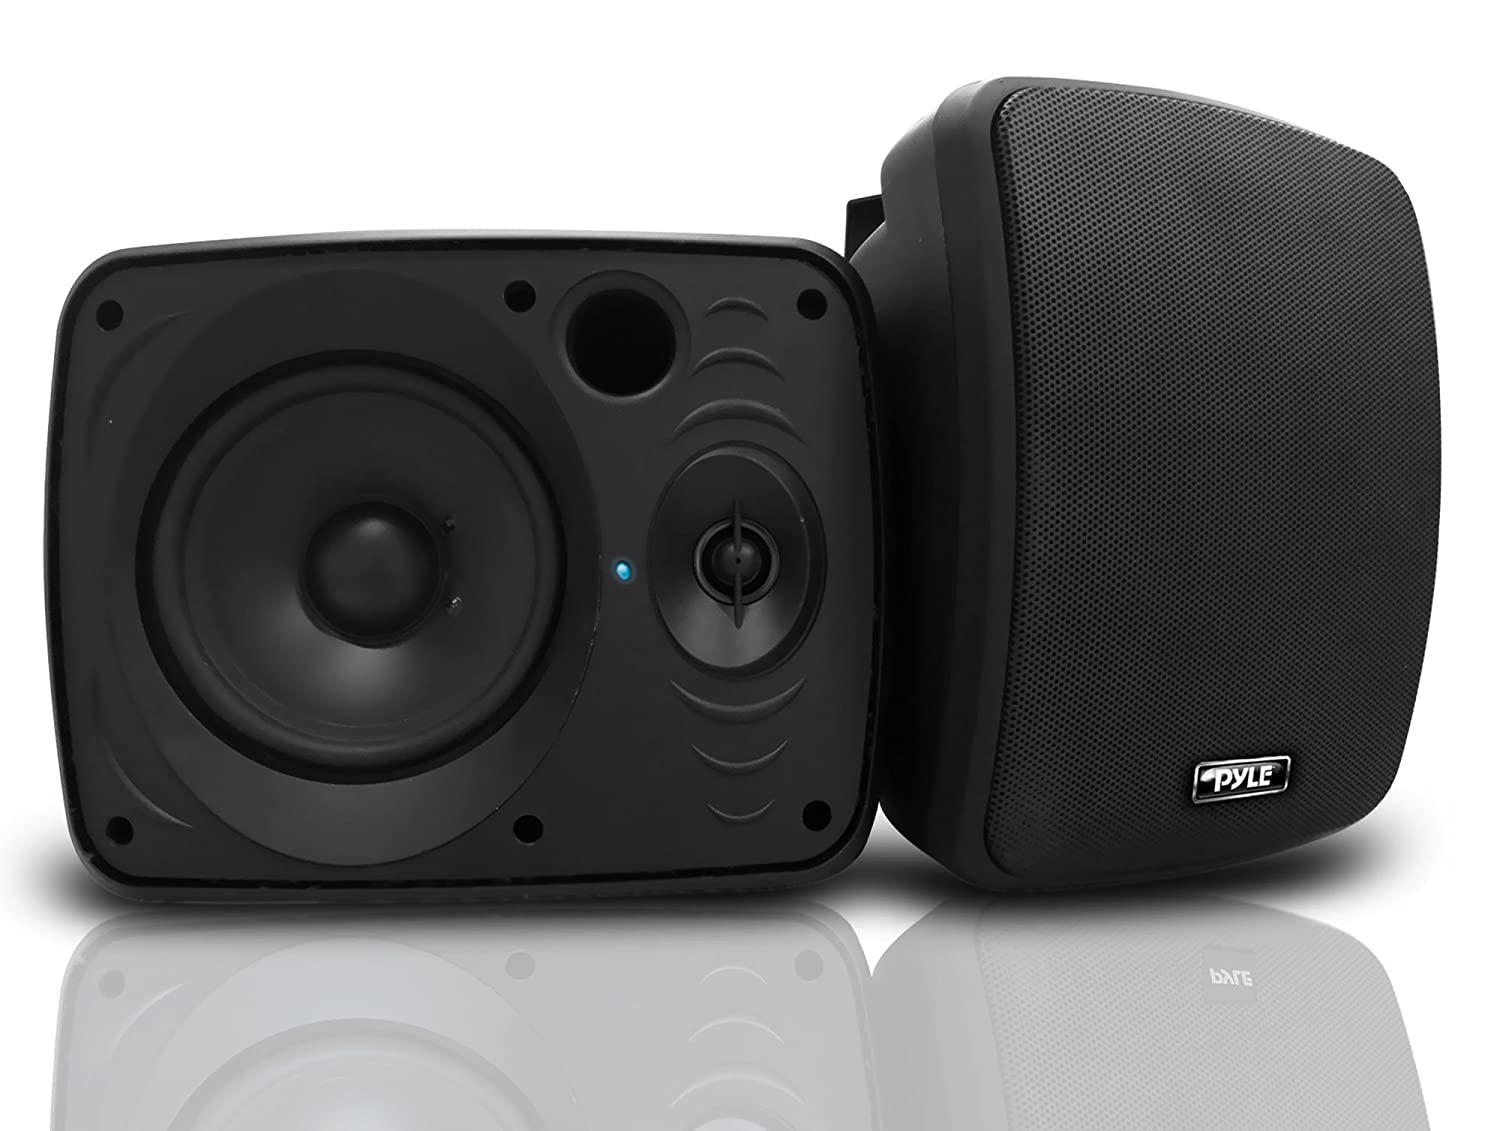 Pyle Audio PDWR54BTB Waterproof and Bluetooth 5.25-Inch Indoor/Outdoor Speaker System, 600 Watt, Black, Pair Sound Around